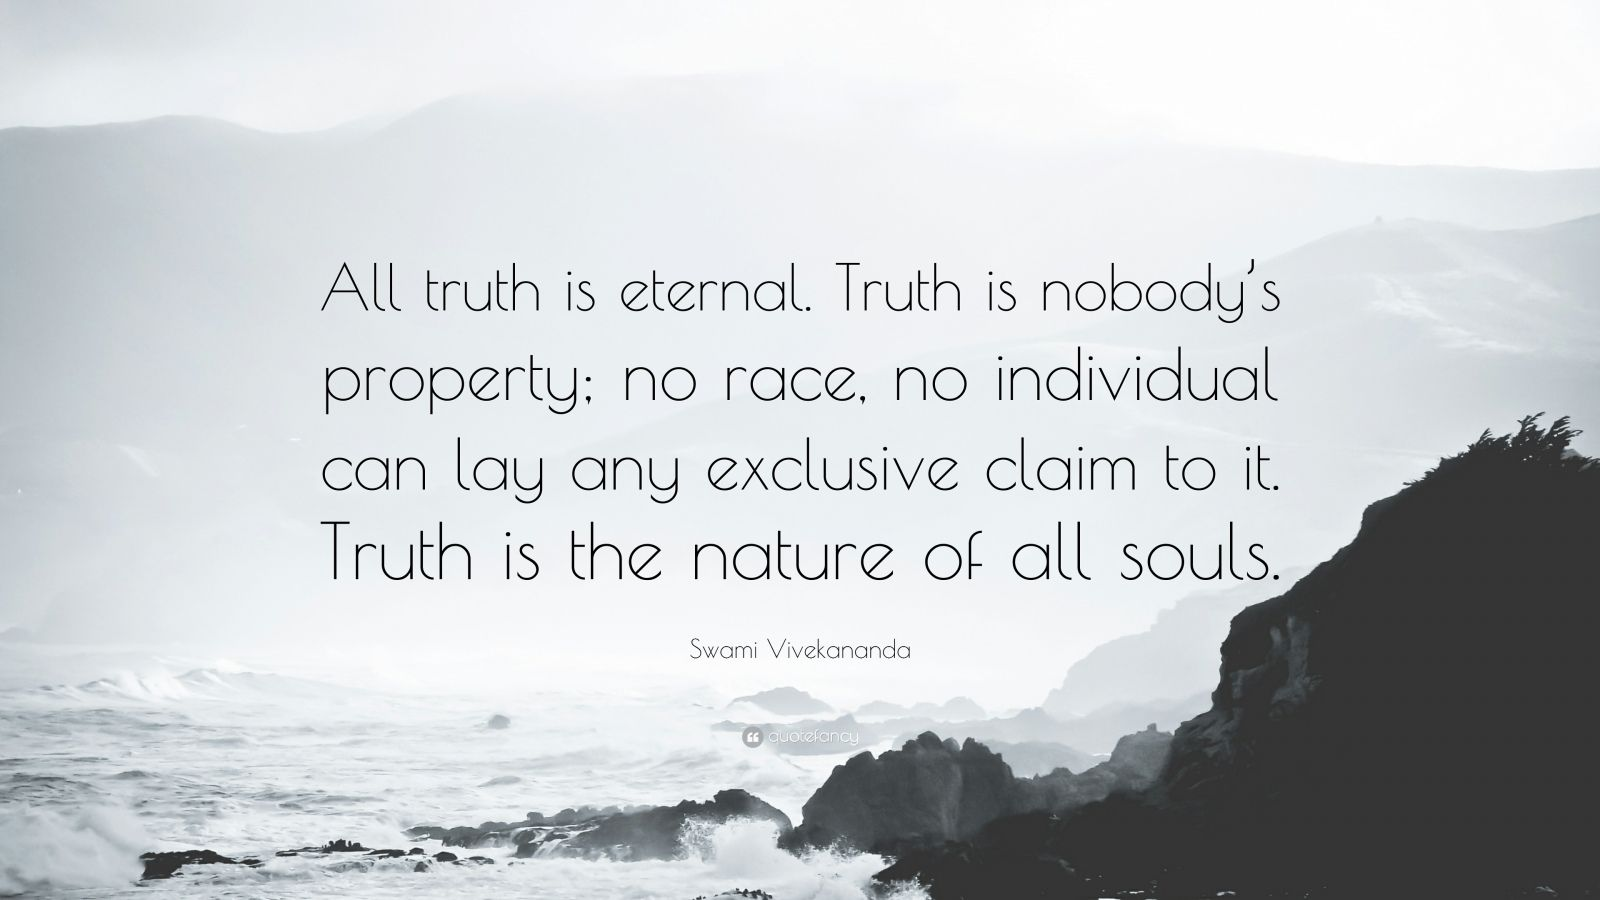 """Swami Vivekananda Quote: """"All truth is eternal. Truth is nobody's property; no race, no individual can lay any exclusive claim to it. Truth is the nature of all souls."""""""